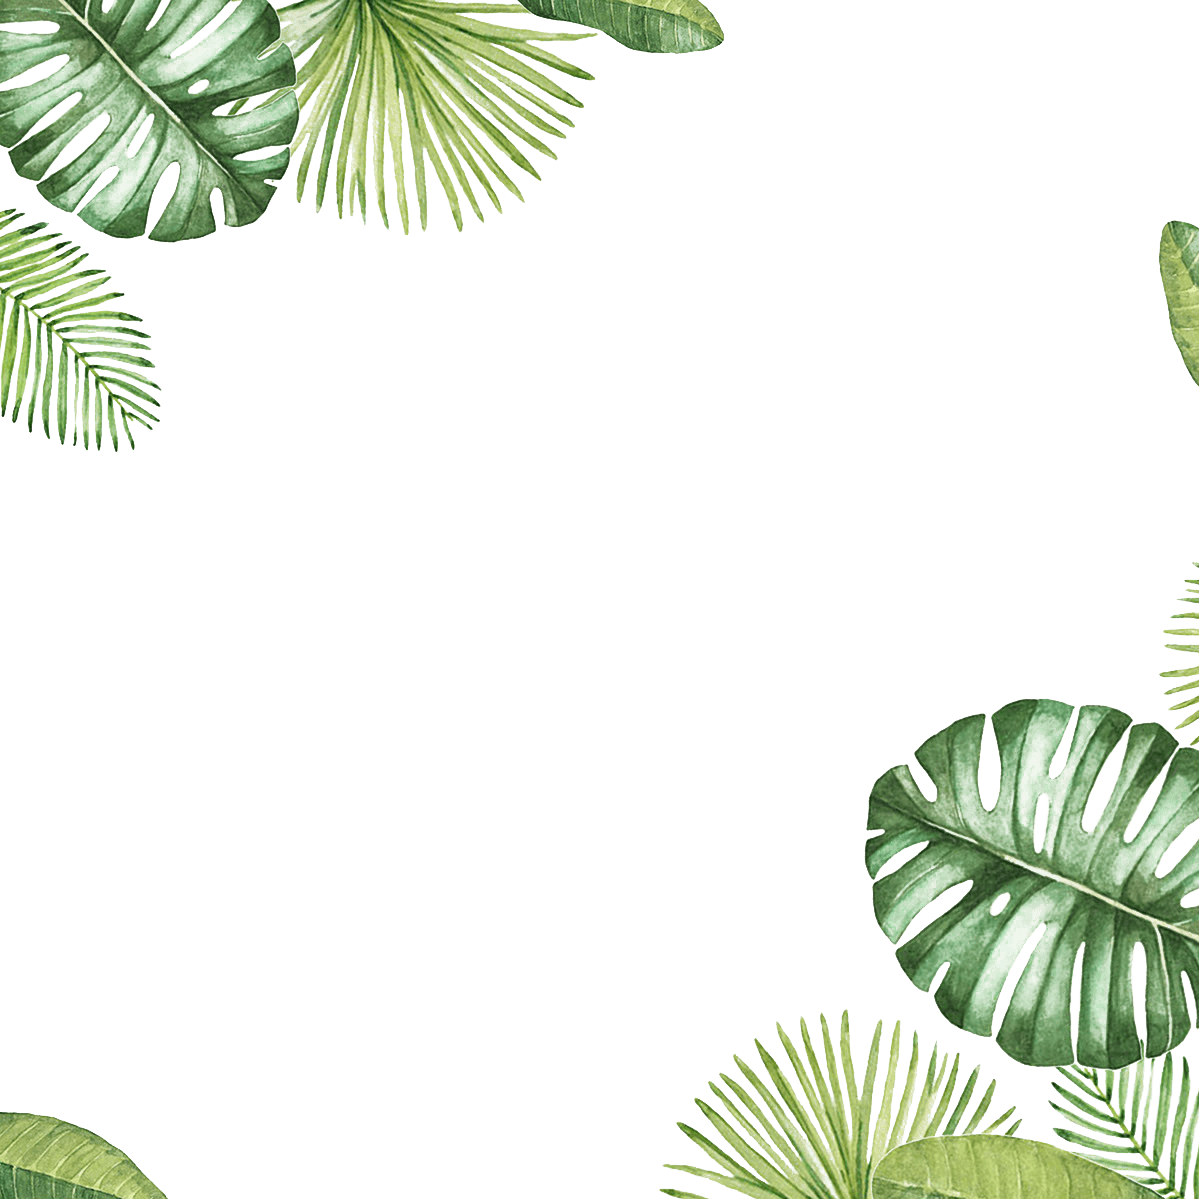 Palm leaf border png. Download transparent background image